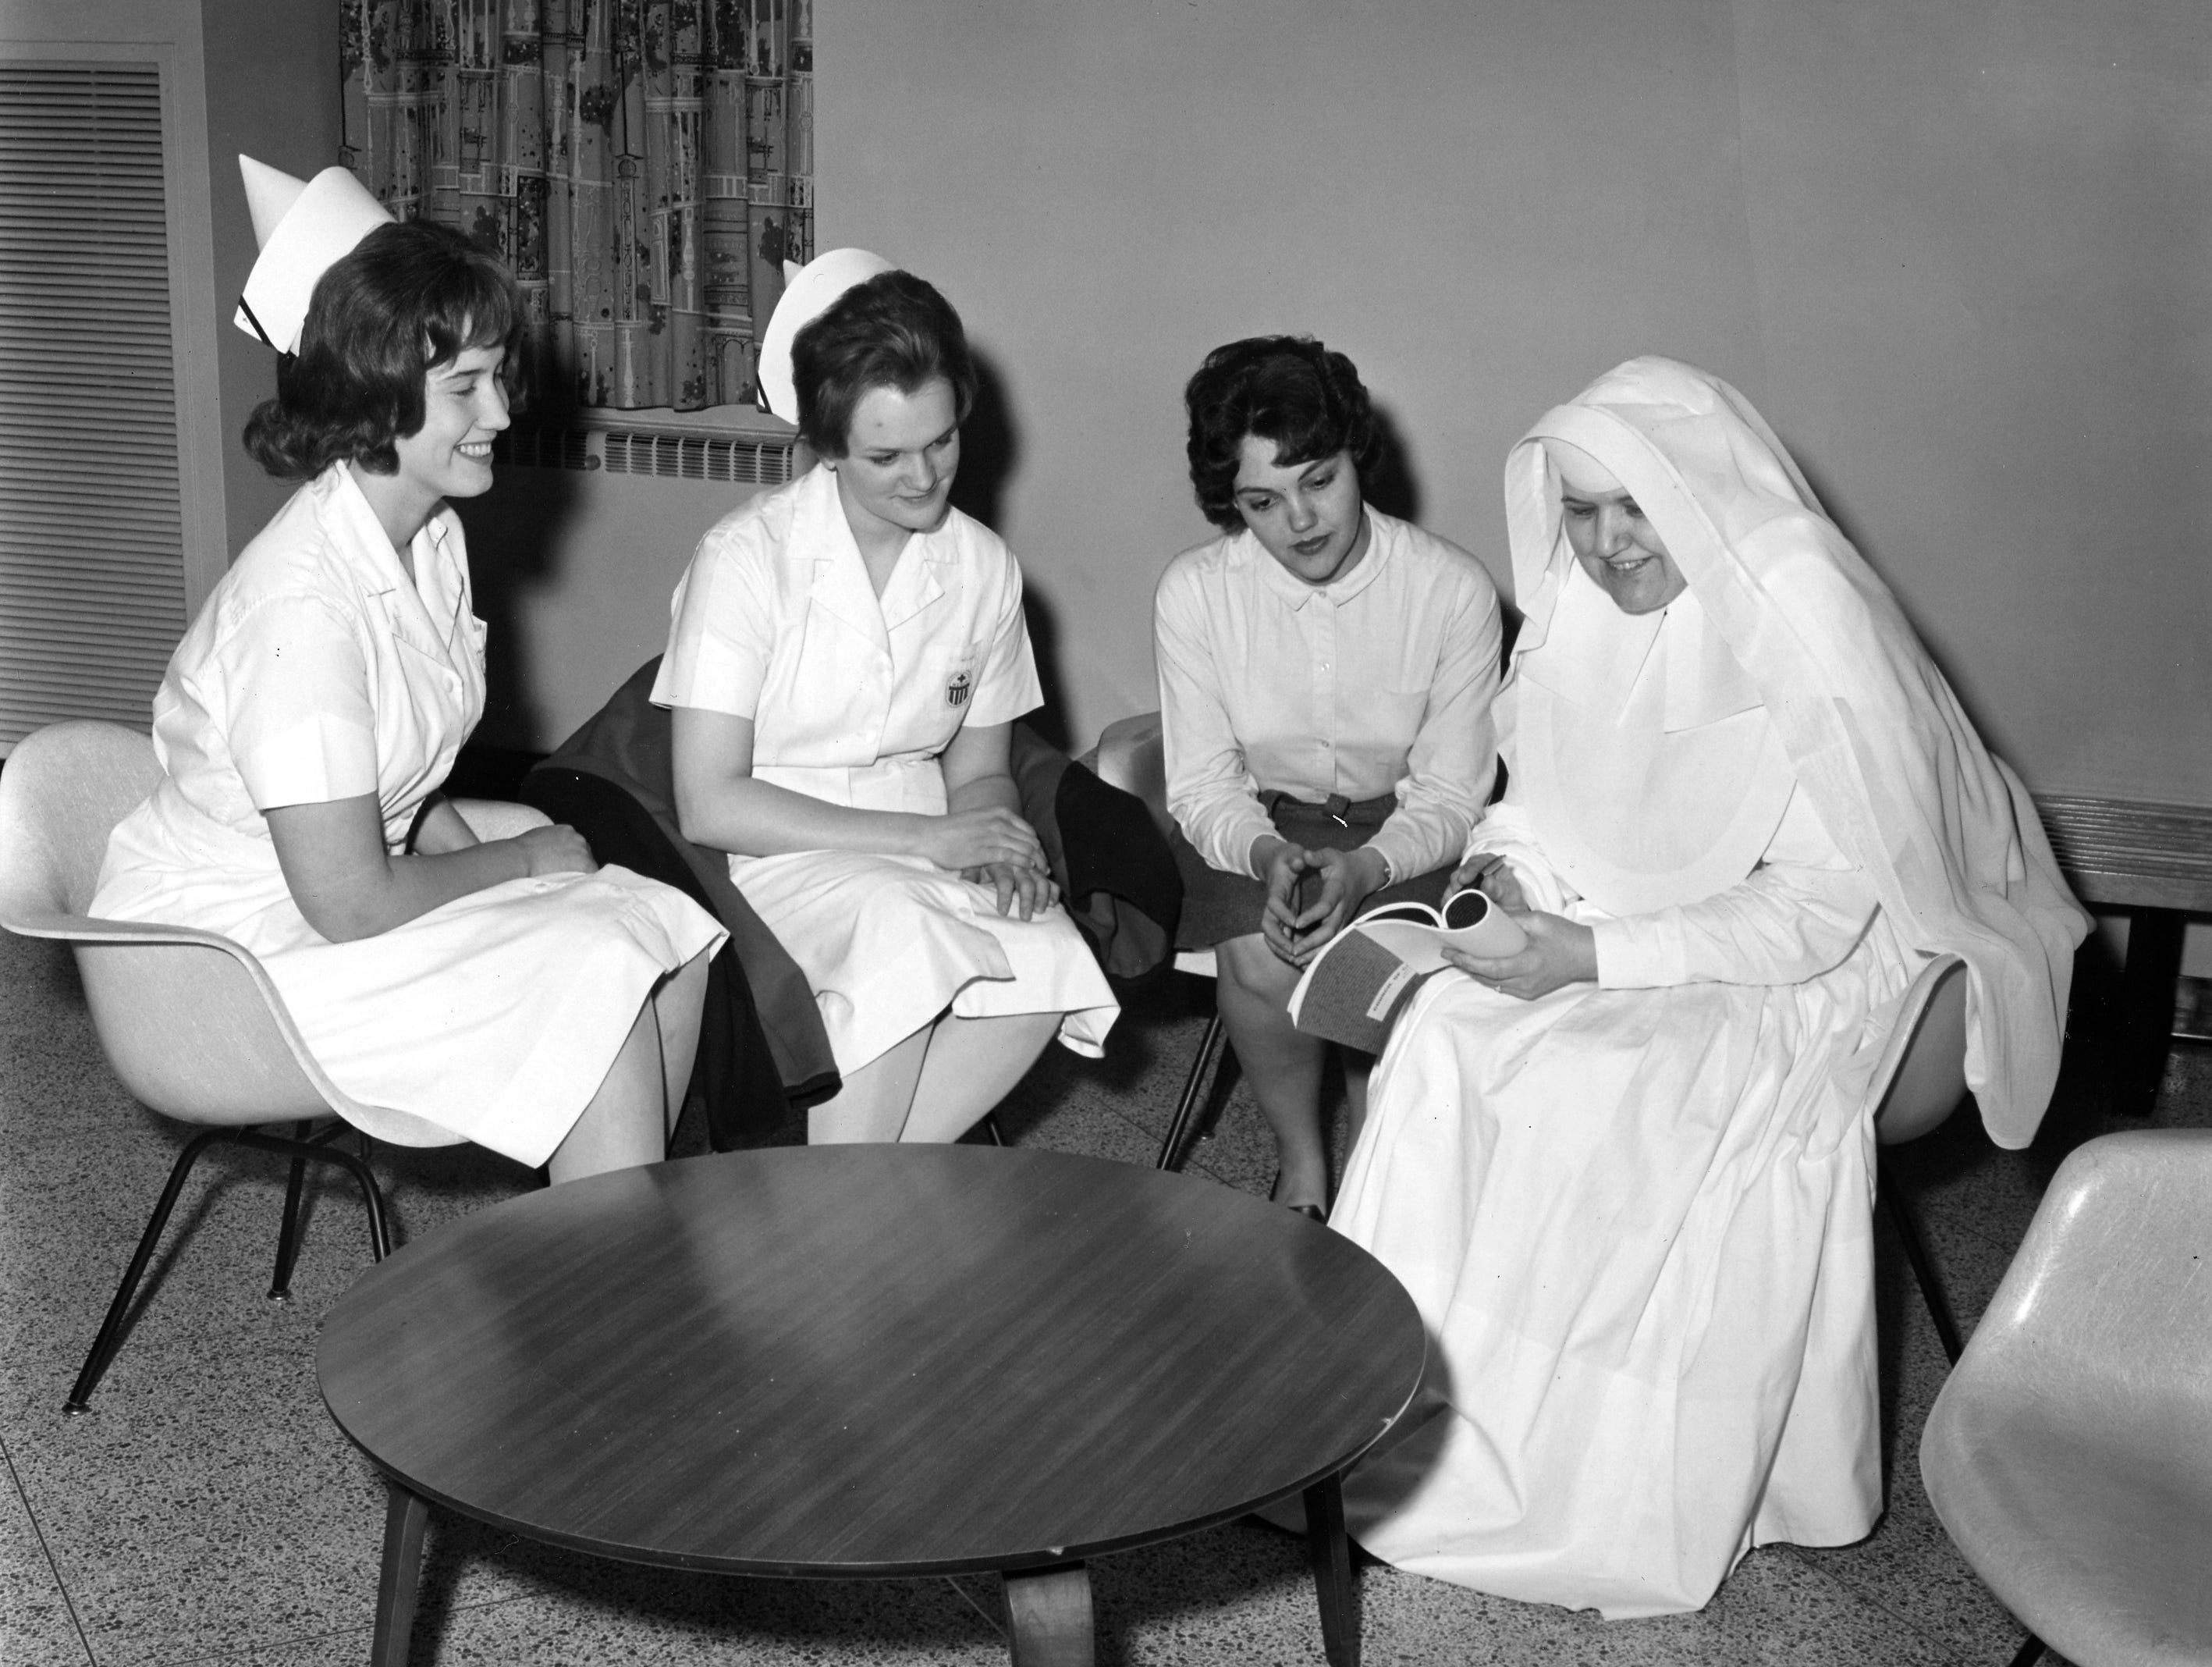 Sister Mary Assisium with 3 student nurses, 1965